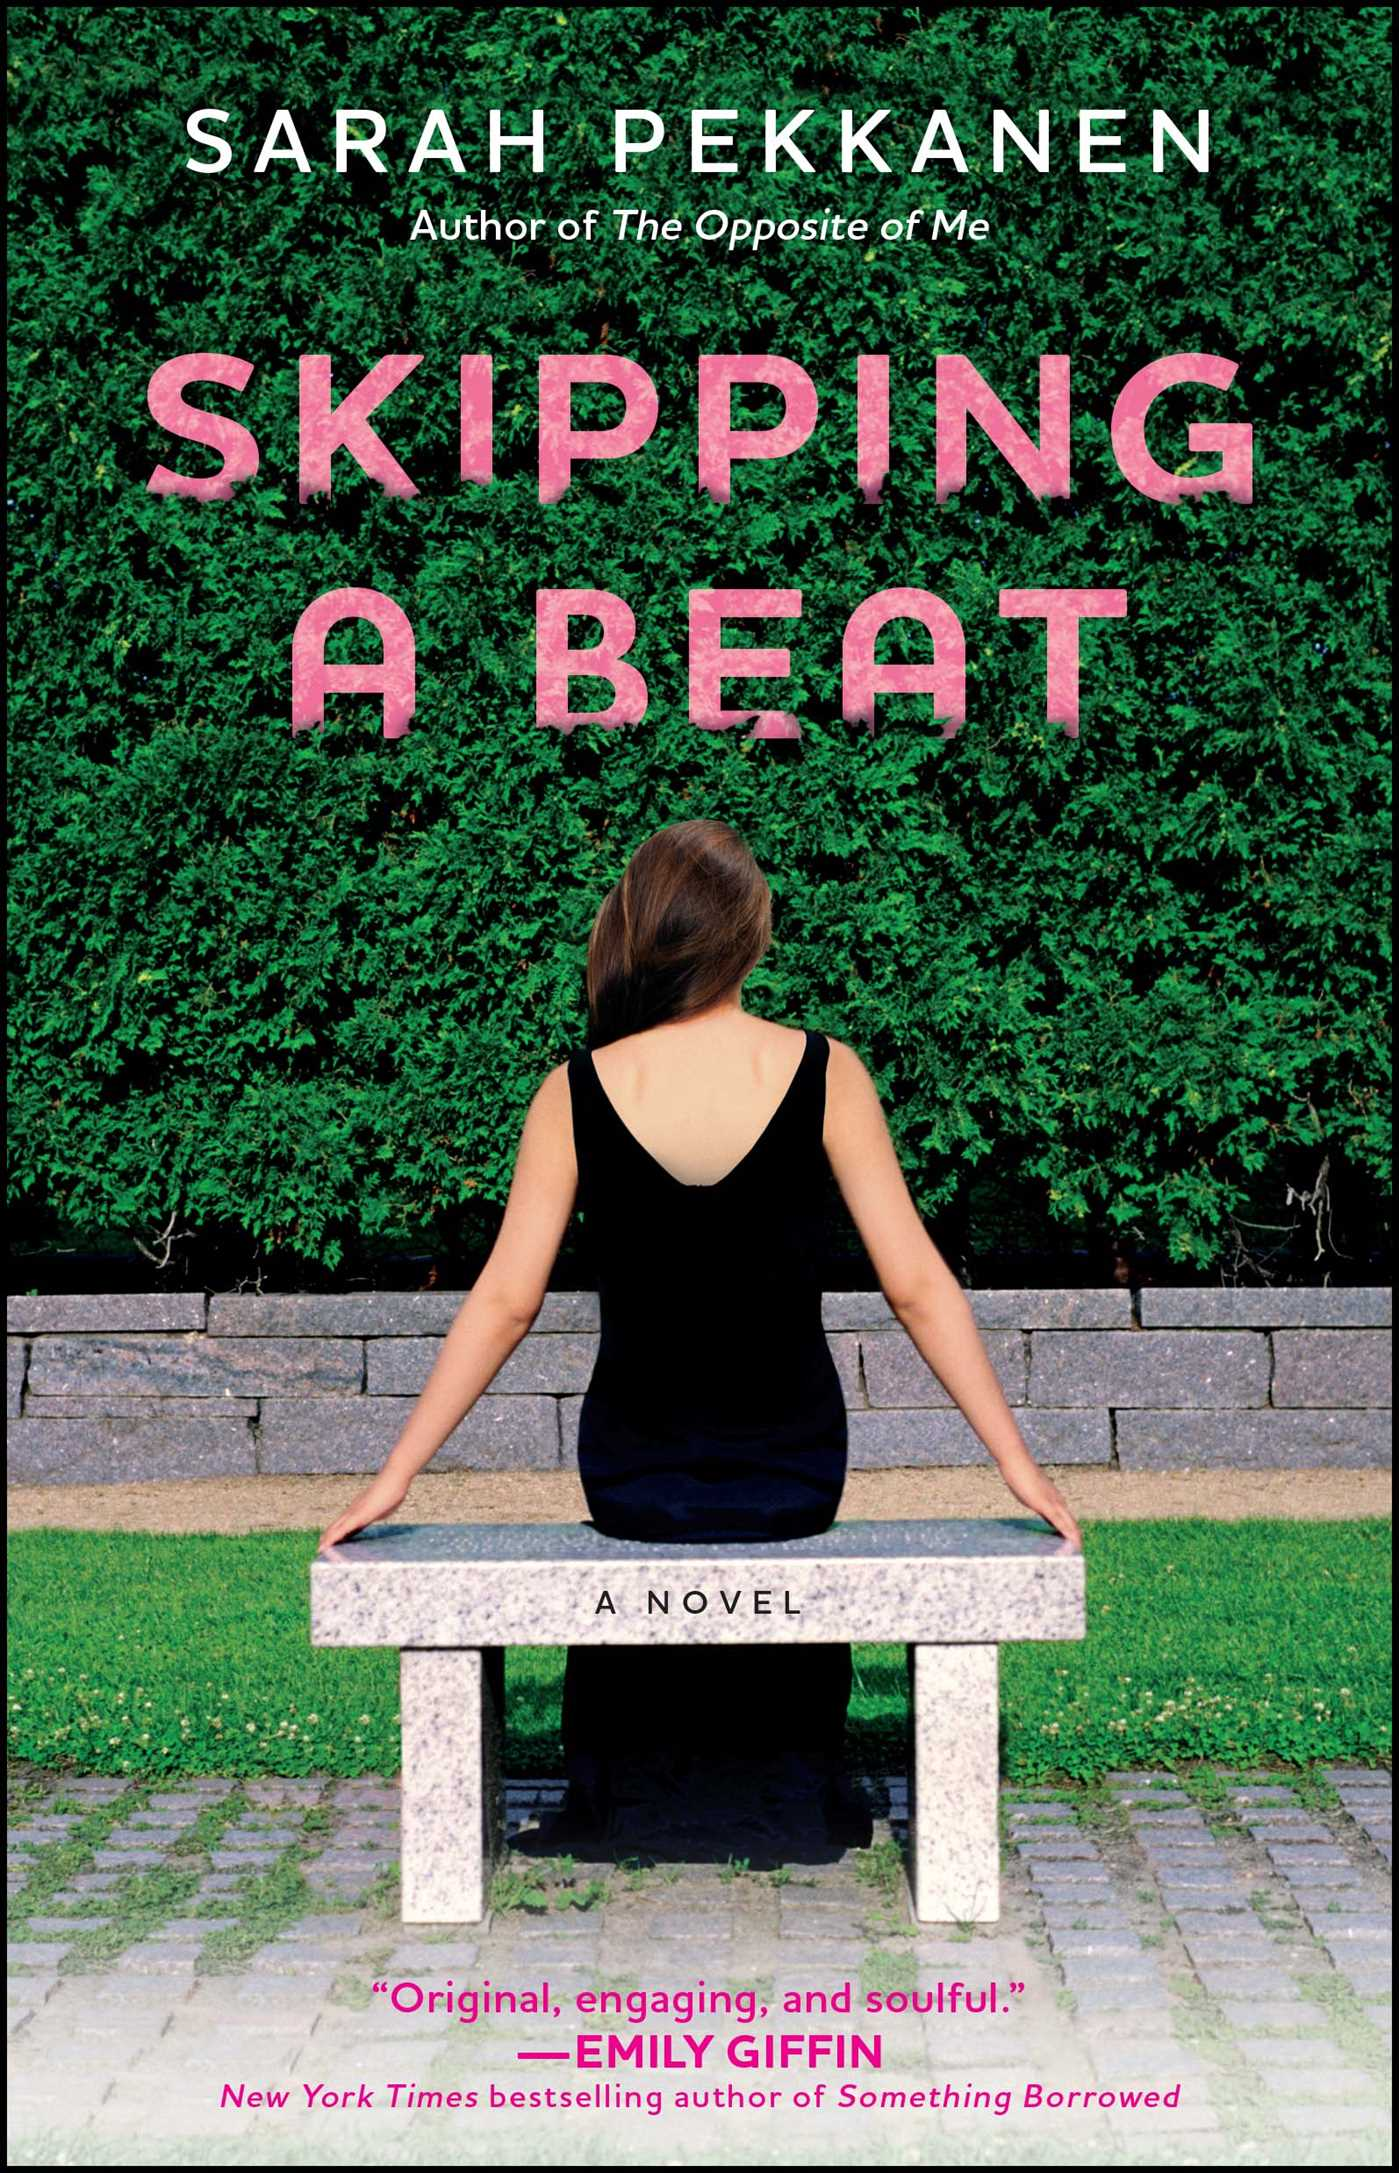 Skipping-a-beat-9781451609837_hr